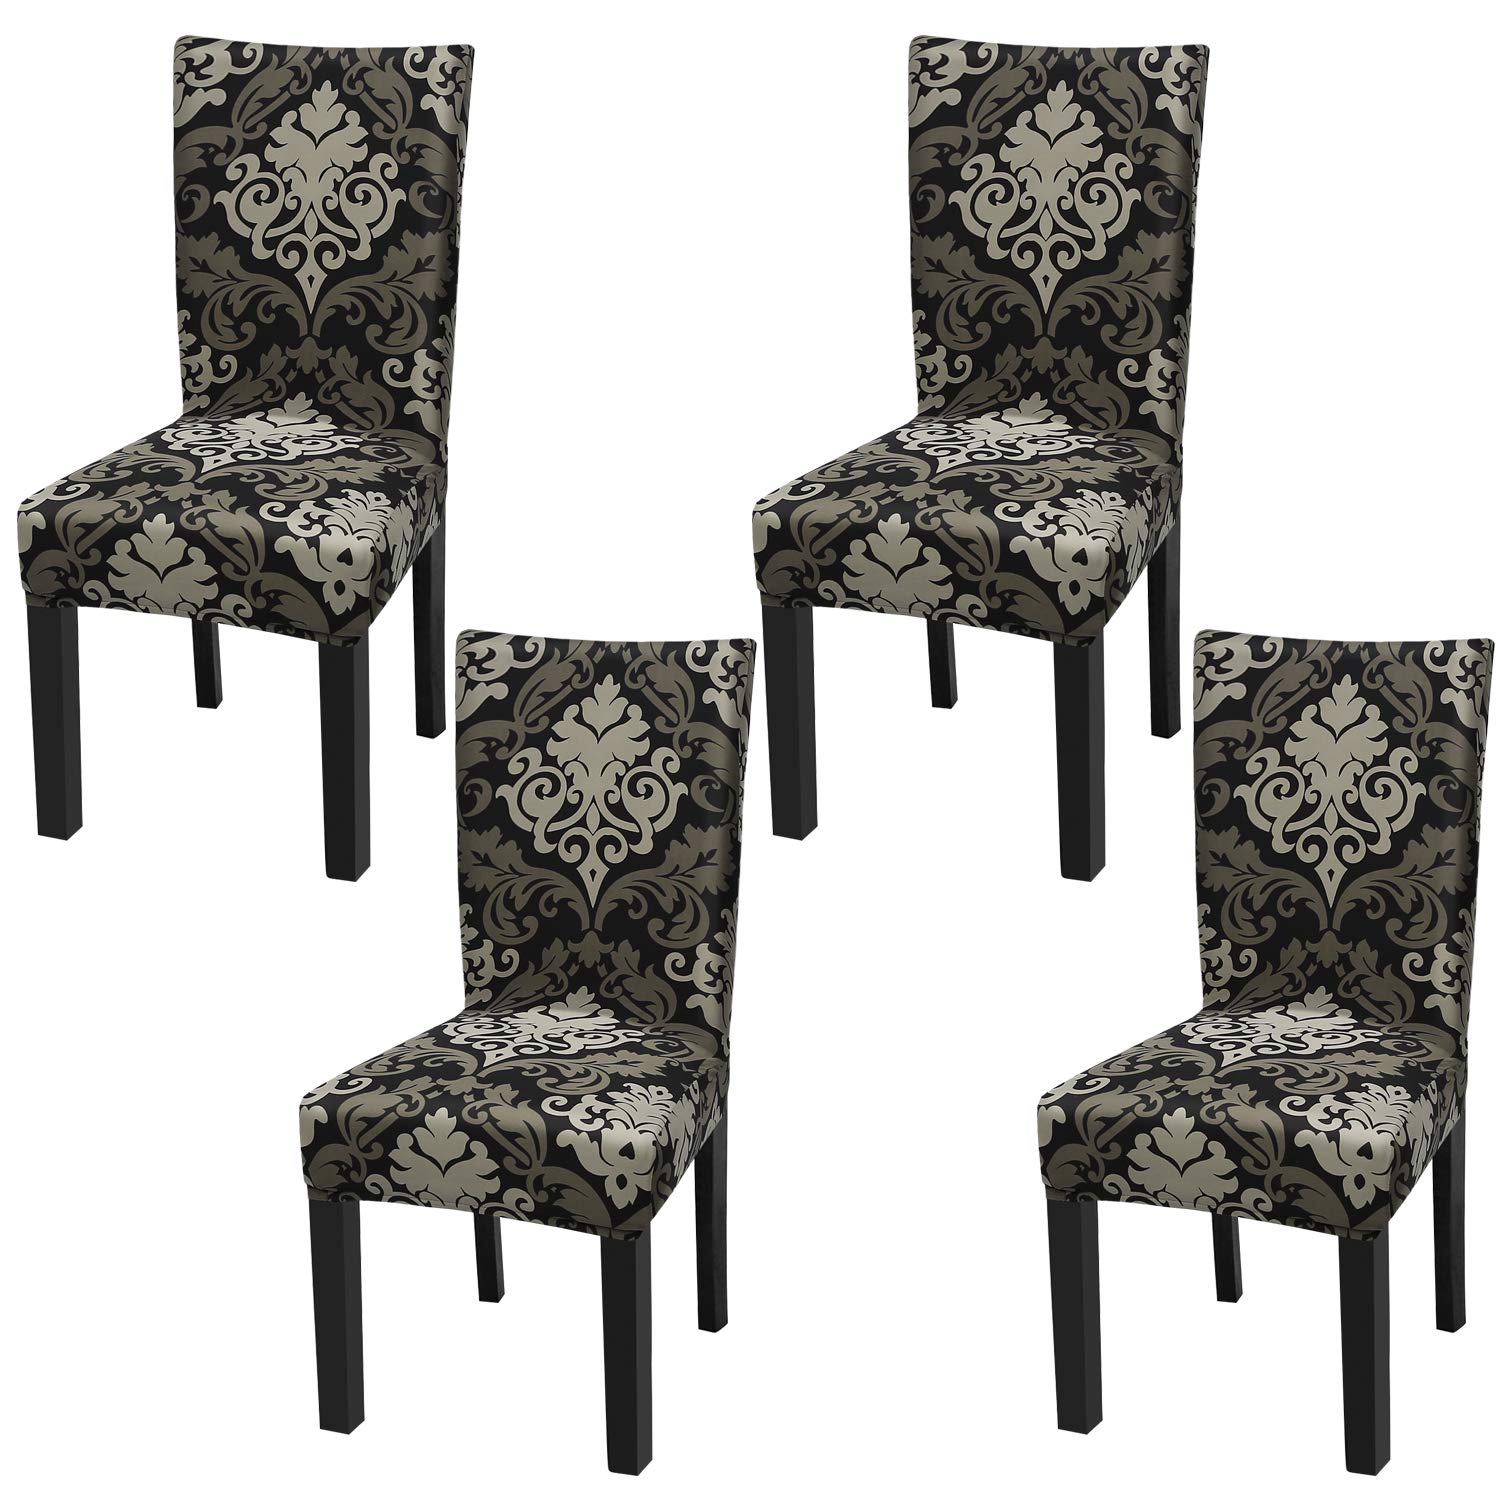 Fuloon Super Fit Stretch Jacquard Removable Washable Short Dining Chair Covers Seat Slipcover for Hotel,Dining Room,Ceremony,Banquet Wedding Party (4, Black with Gold)